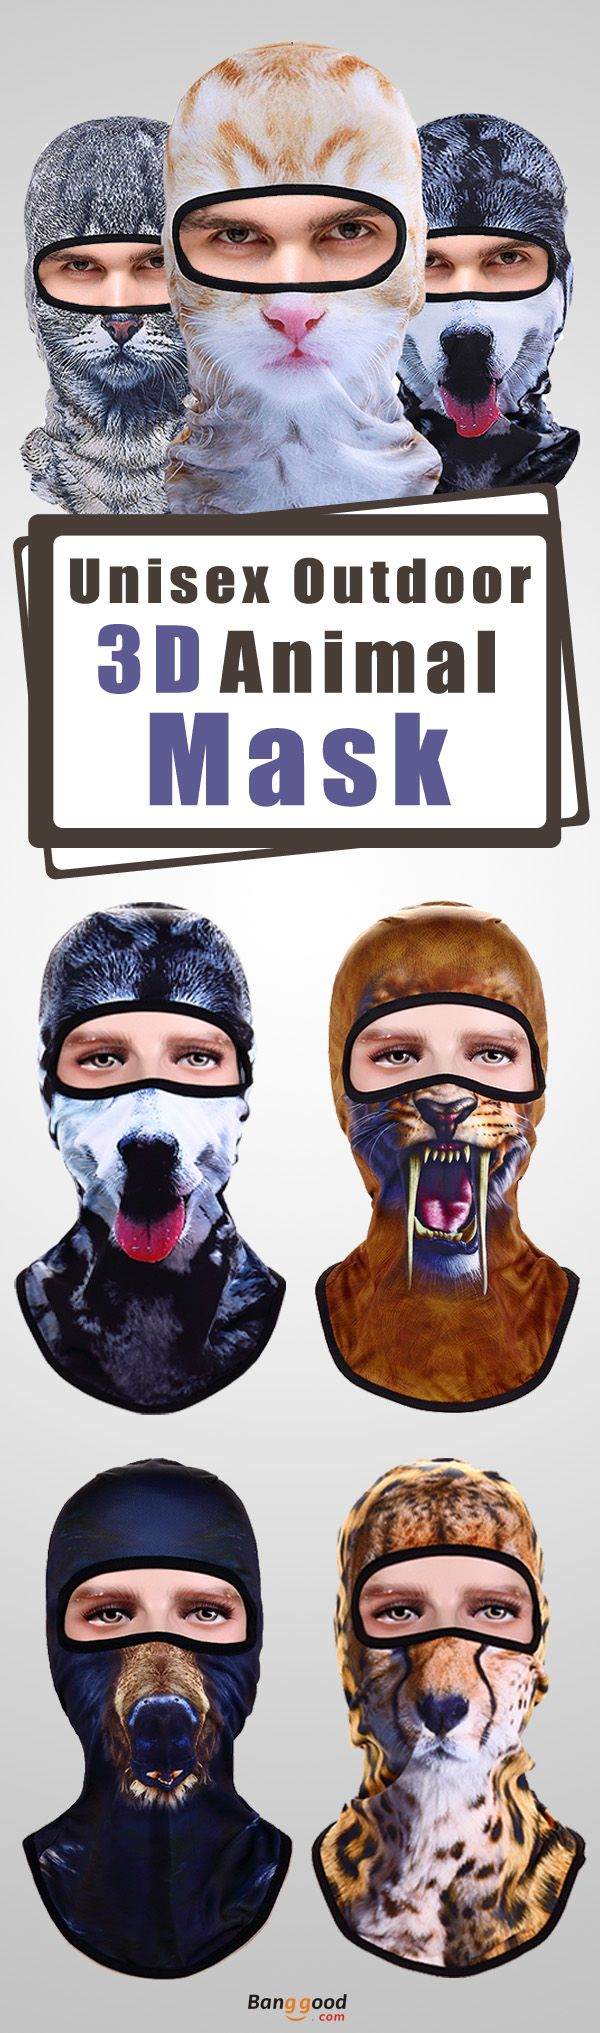 57%OFF&Free shipping. 3D Animal Mask, Unisex, Outdoors,  Bicycle, Ski, Full Face Mask Hats.    Warm,Dustproof,Sweat.  Event, holiday, party, Christmas, applicable to various occasions, shop now~